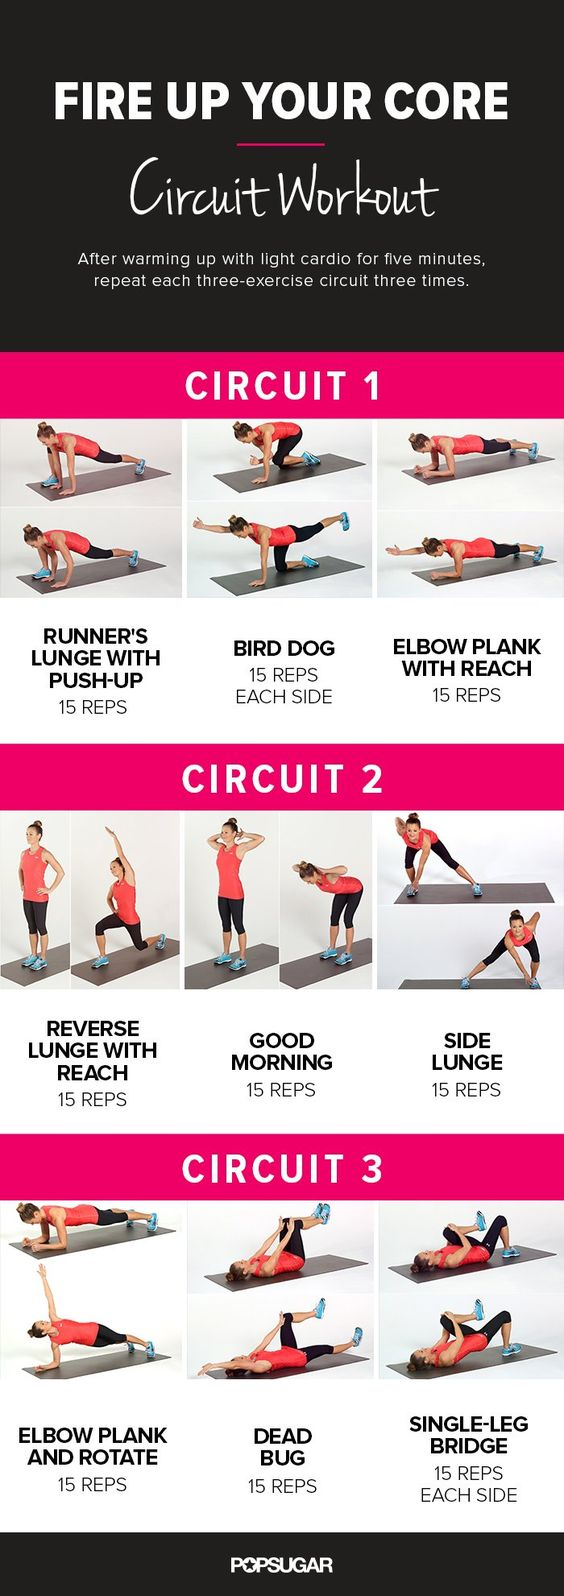 31 Intense Fat Loss Workouts You Can Do At Home With No Equipment Circuit Training Programs Best Exercises 3 Min Beginner Arm Workout